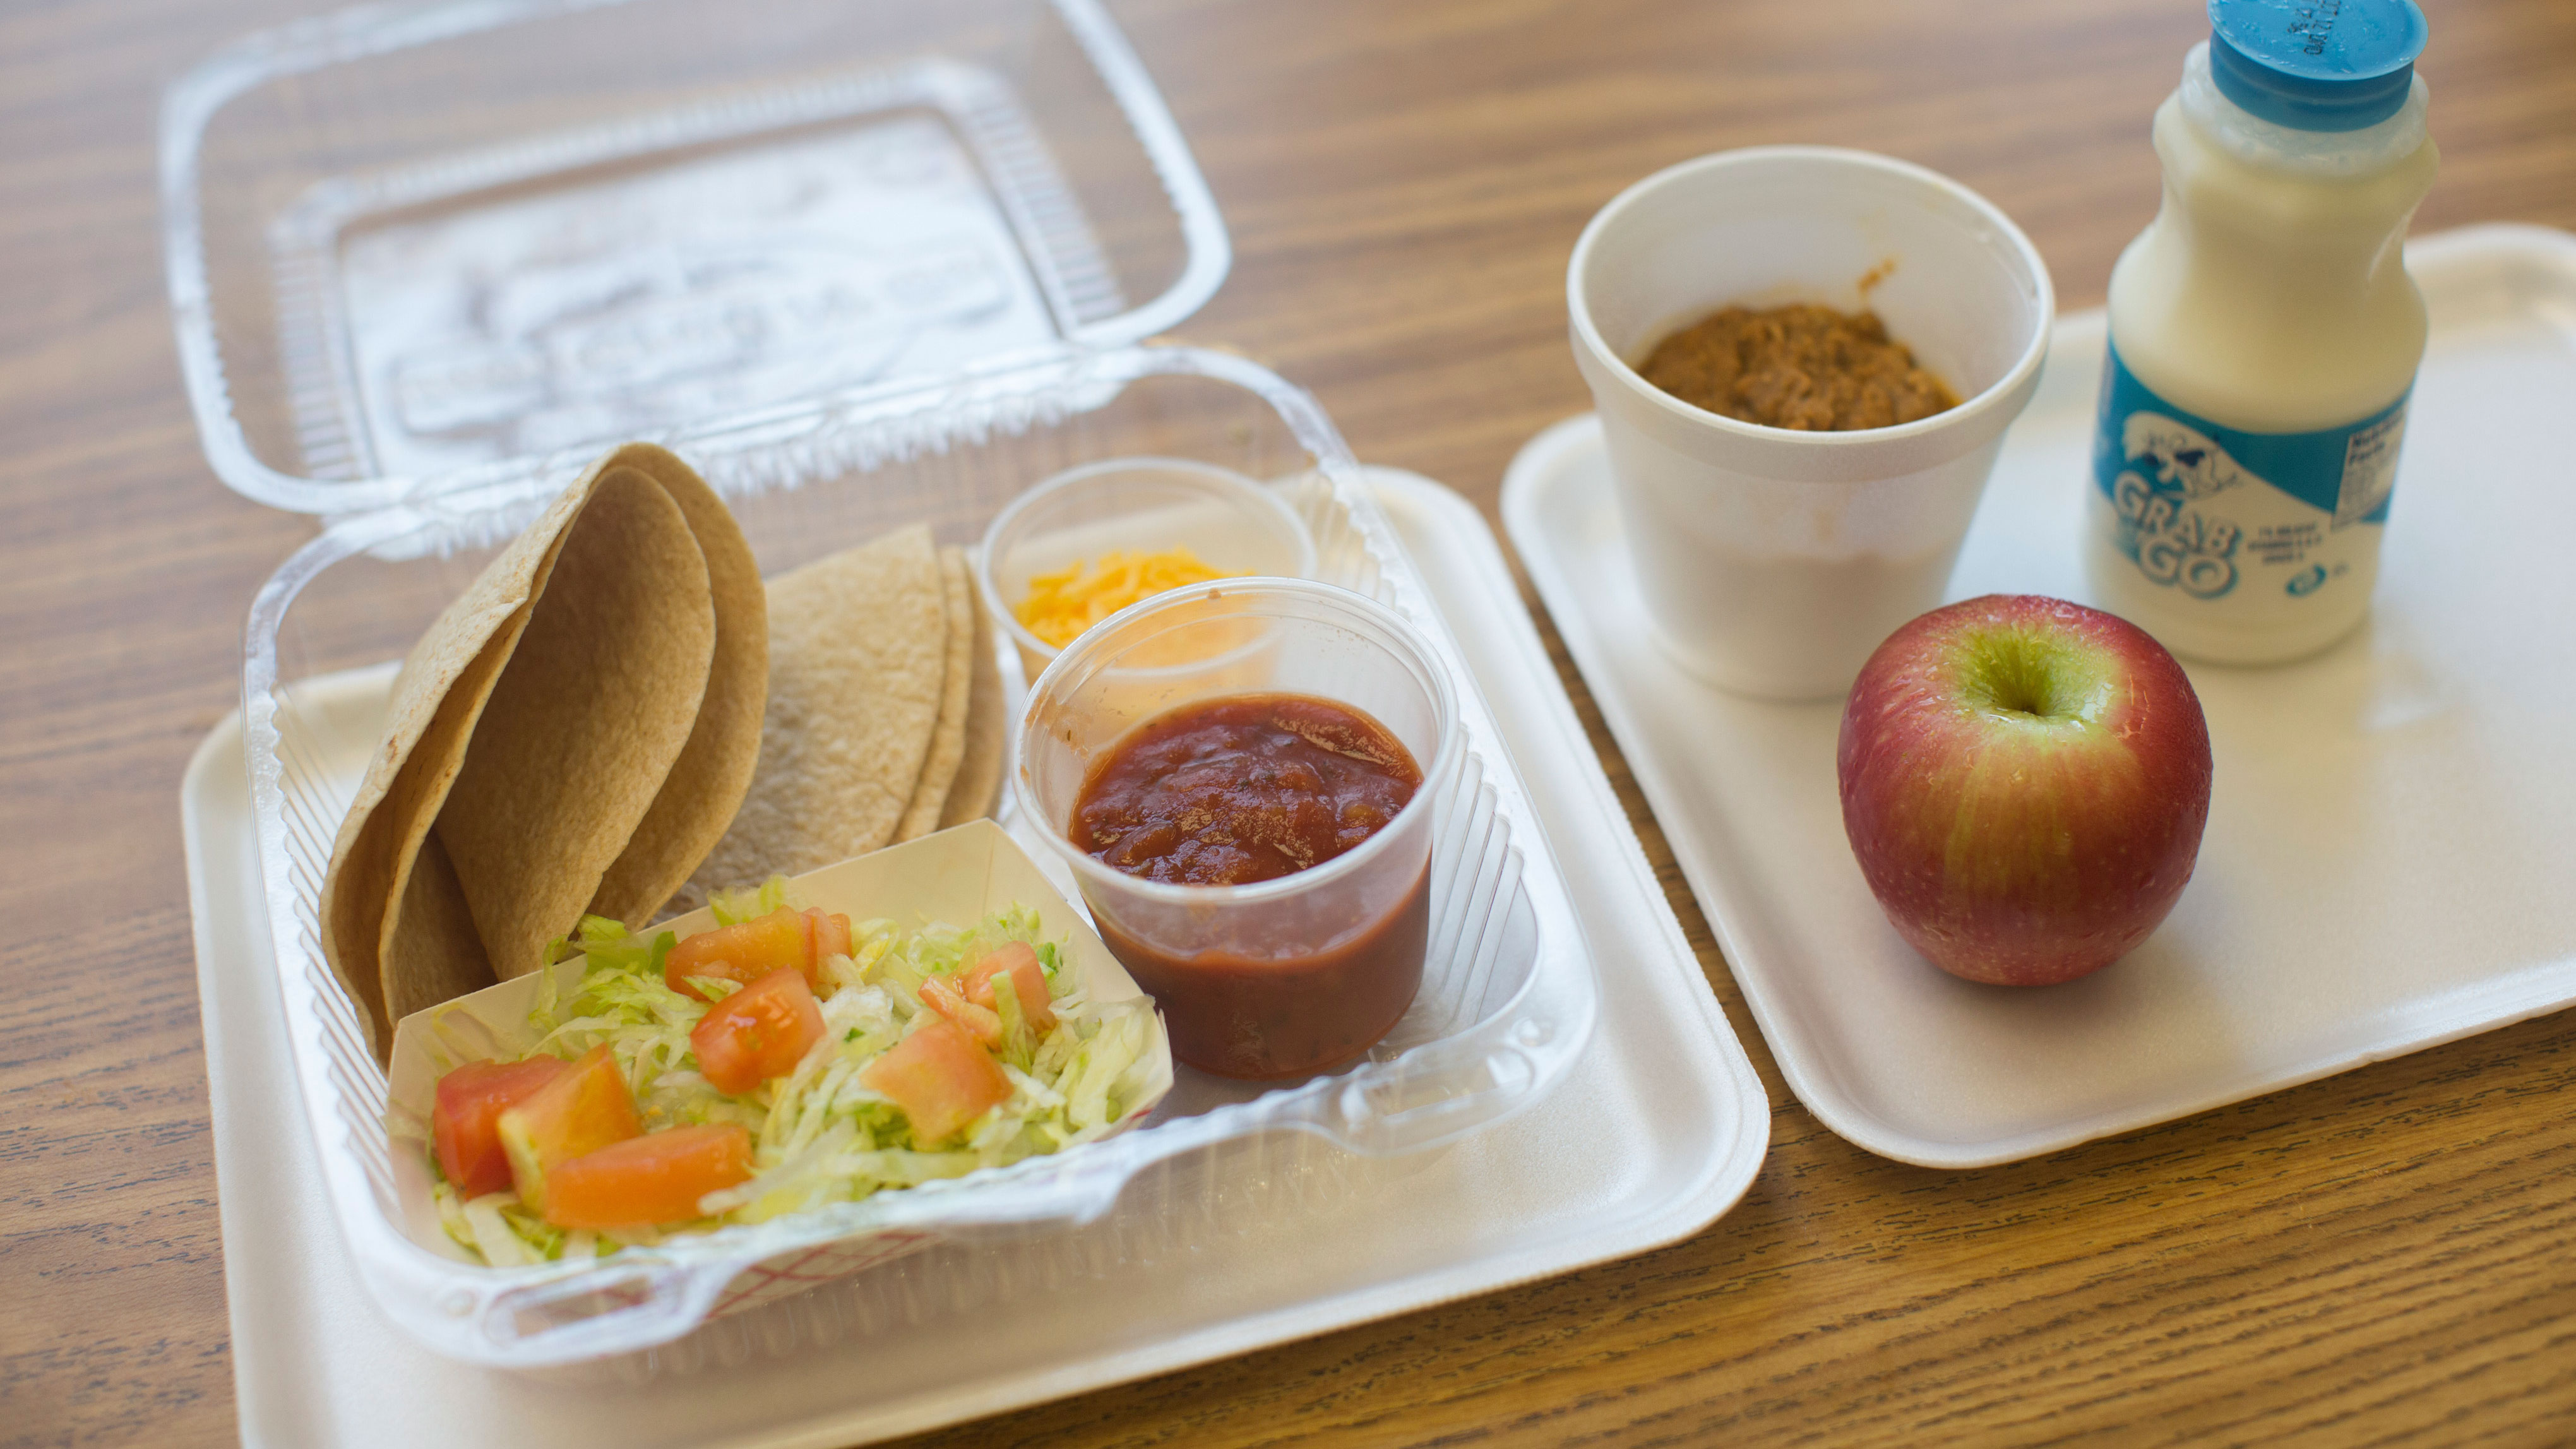 Cafeteria staff prepare school lunches for students